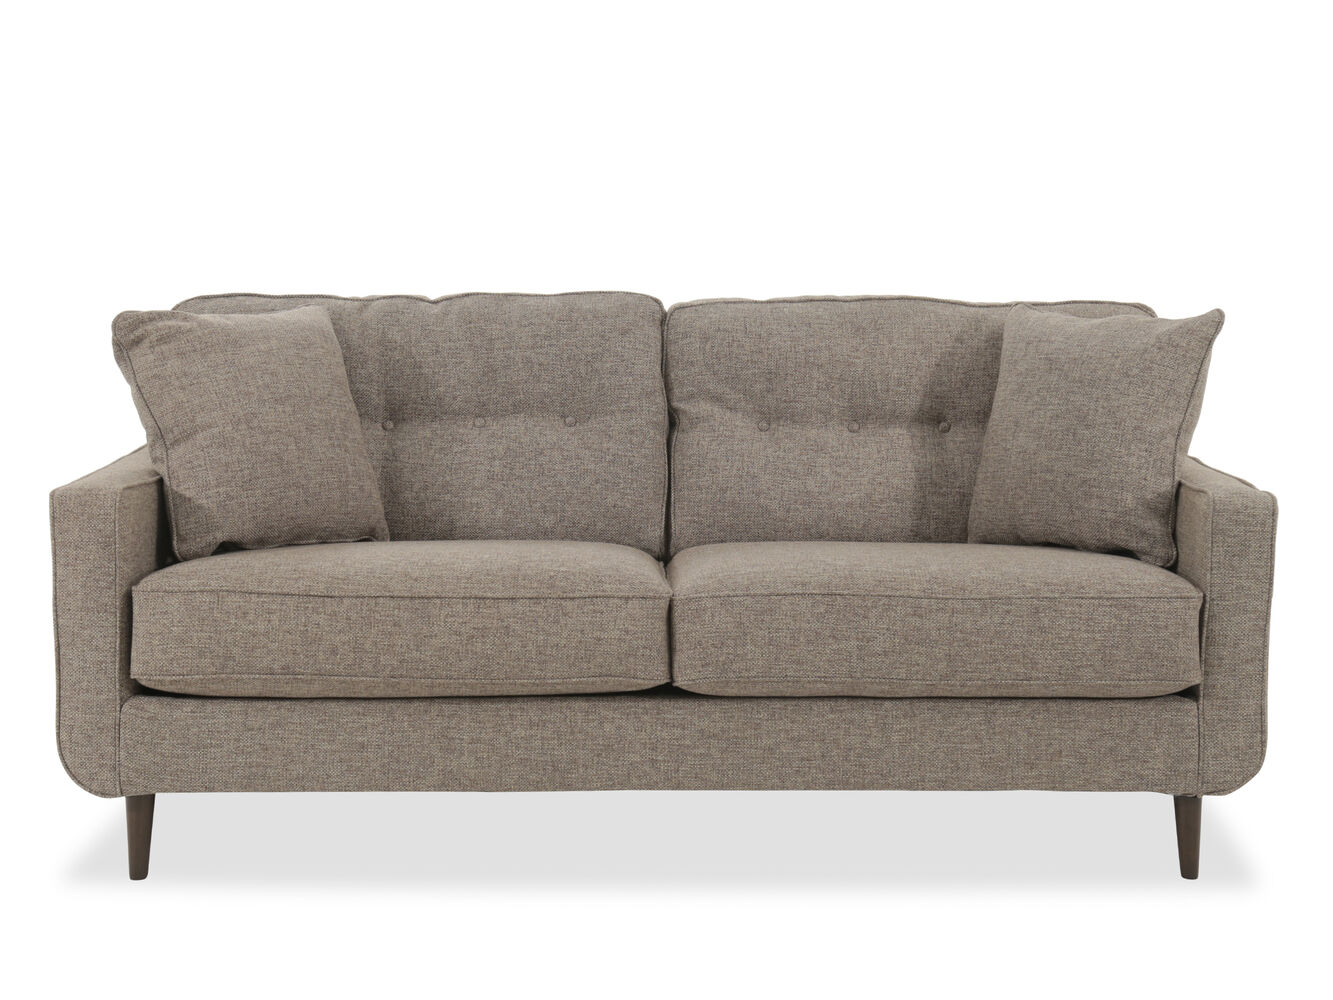 Modern Button Tufted 79 Sofa In Jute Mathis Brothers Furniture